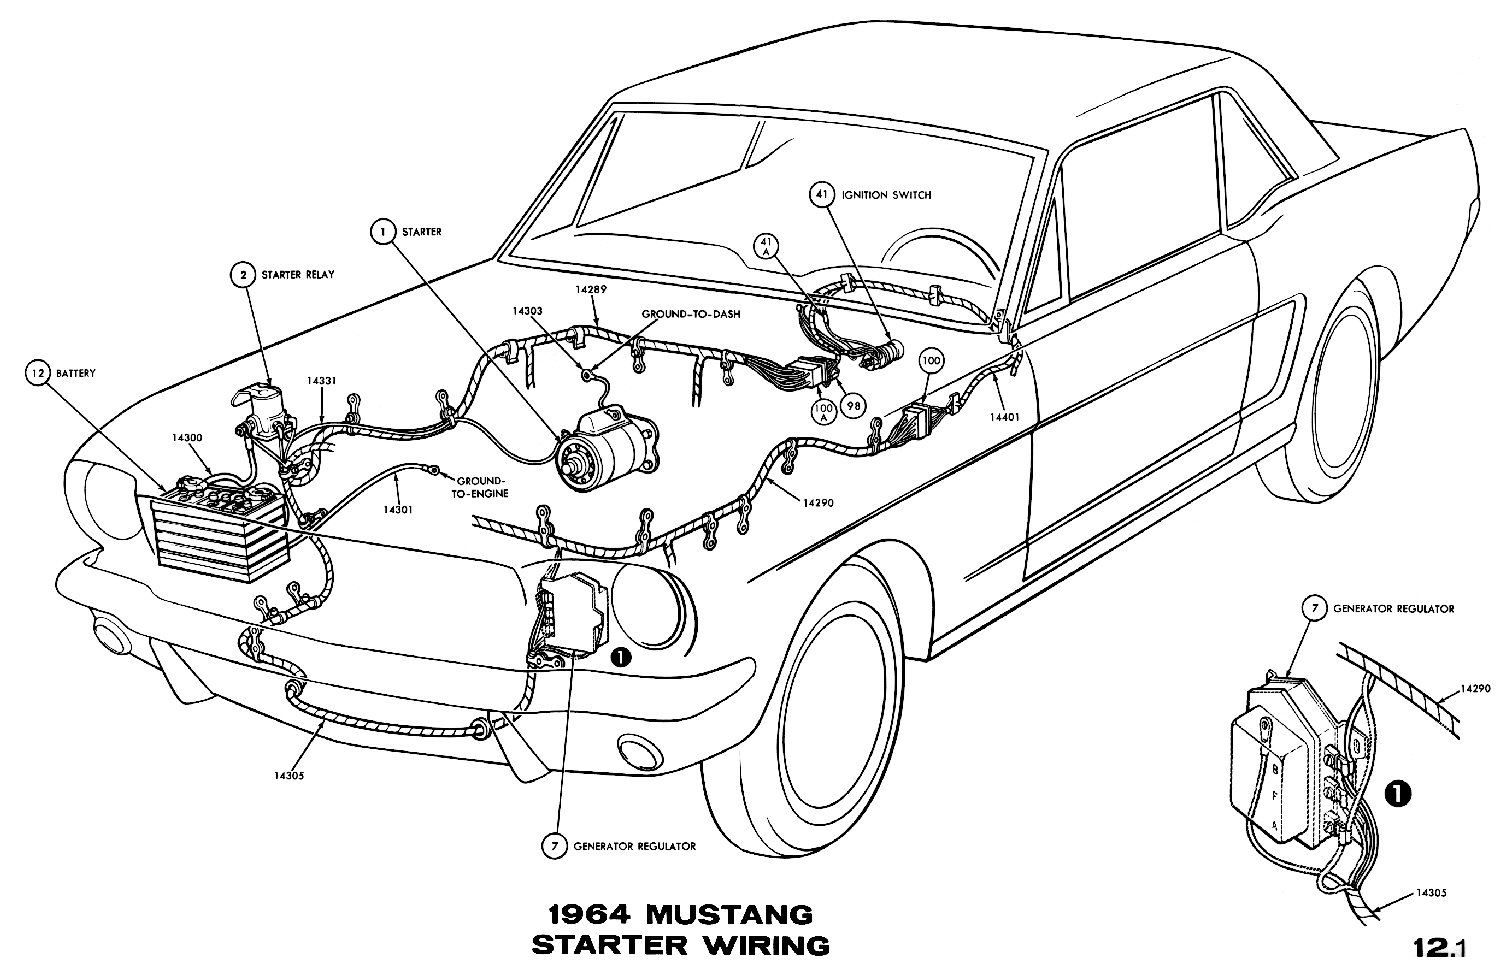 1964 Mustang Wiring Diagrams Average Joe Restoration Ford Schematics Sm1964d Starter Pictorial Or Schematic